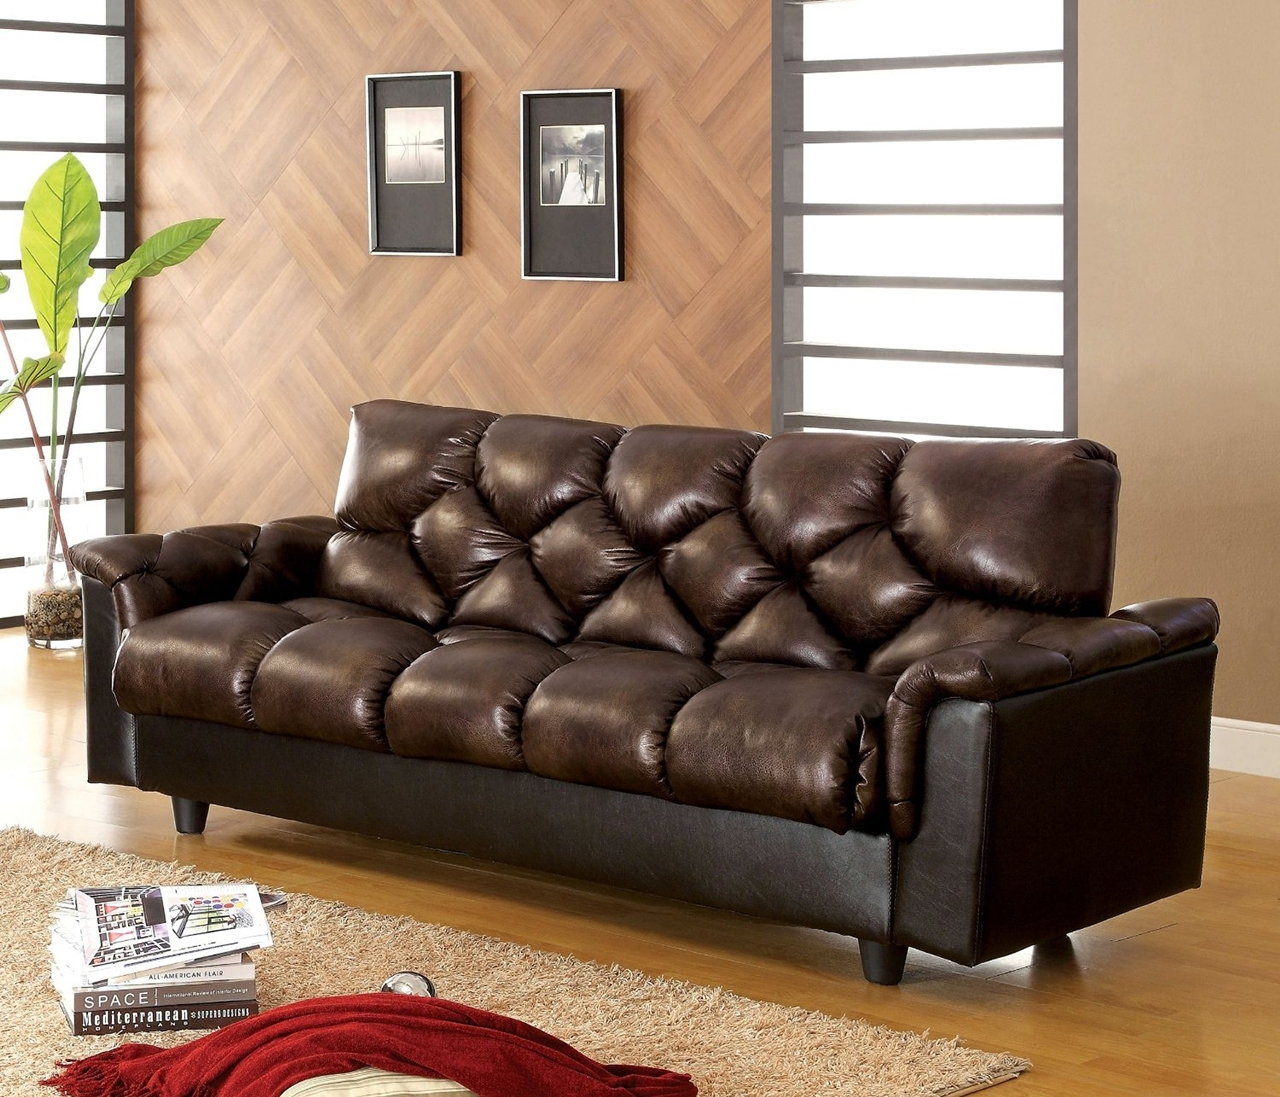 Klik Klak Sofa Bed With Storage 70 With Klik Klak Sofa Bed With with regard to Leather Sofas With Storage (Image 4 of 10)